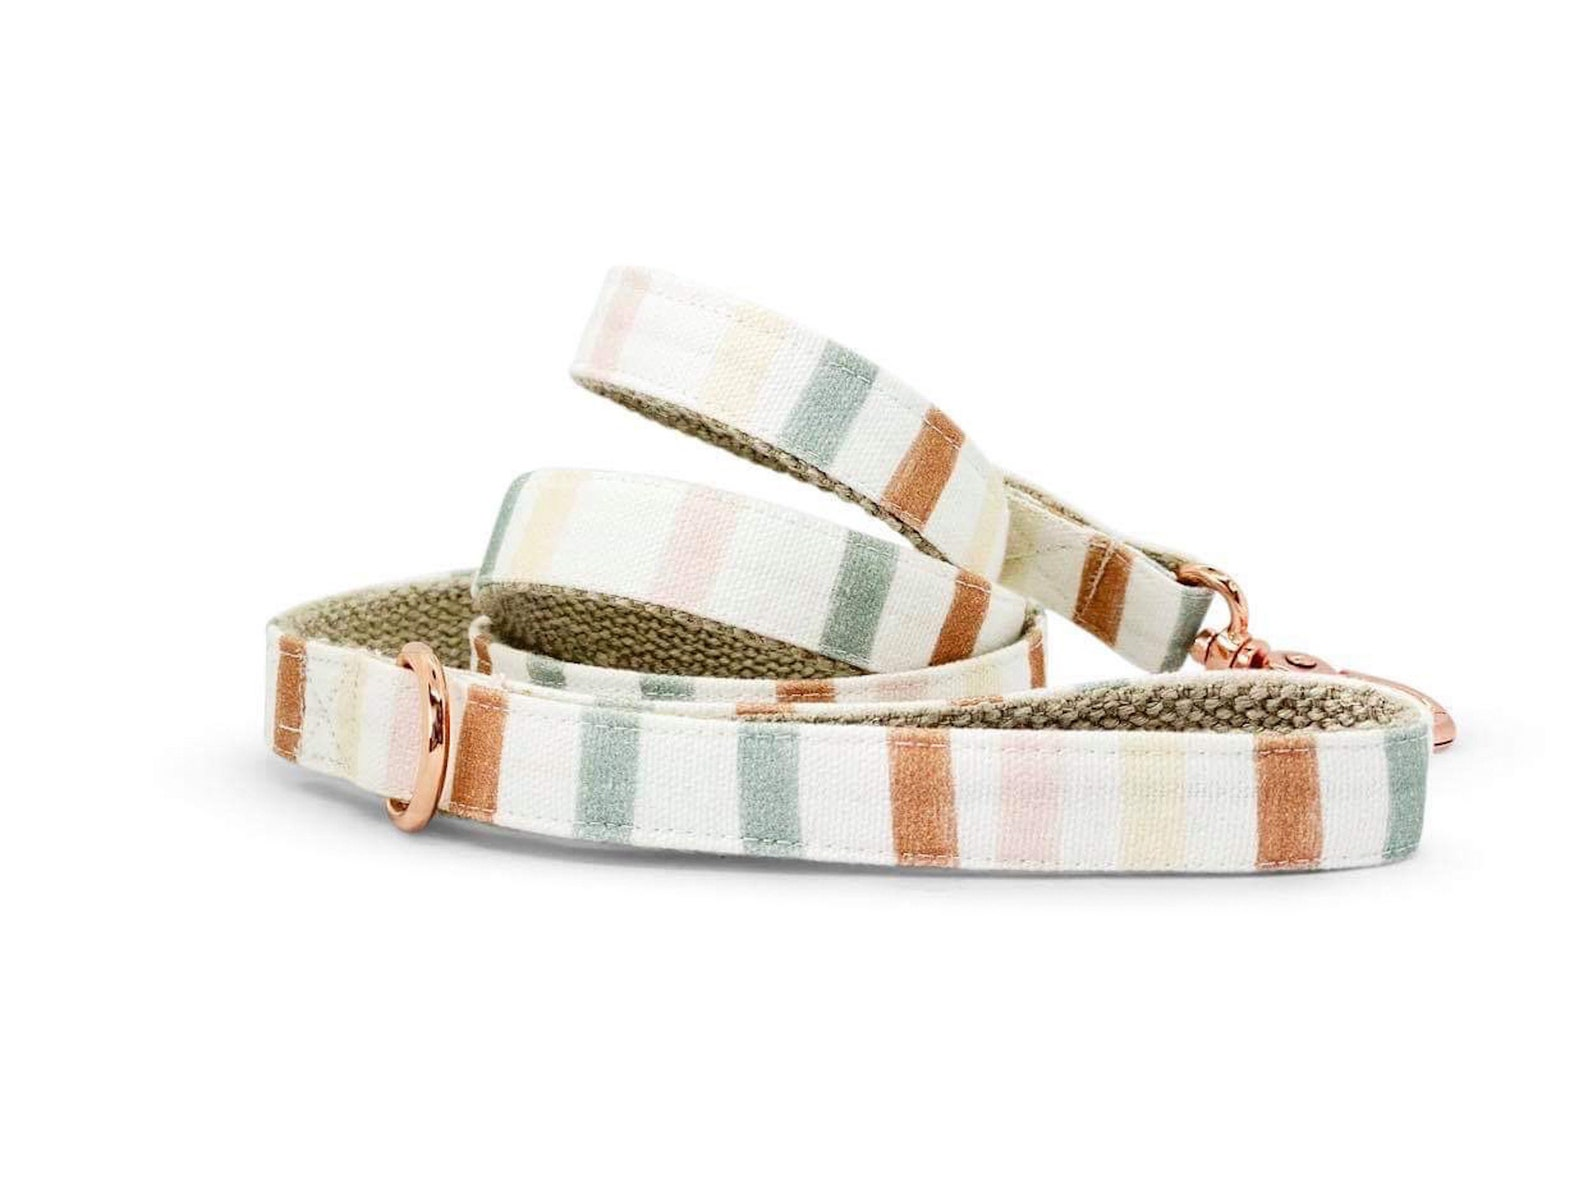 Eco-friendly hemp dog leash